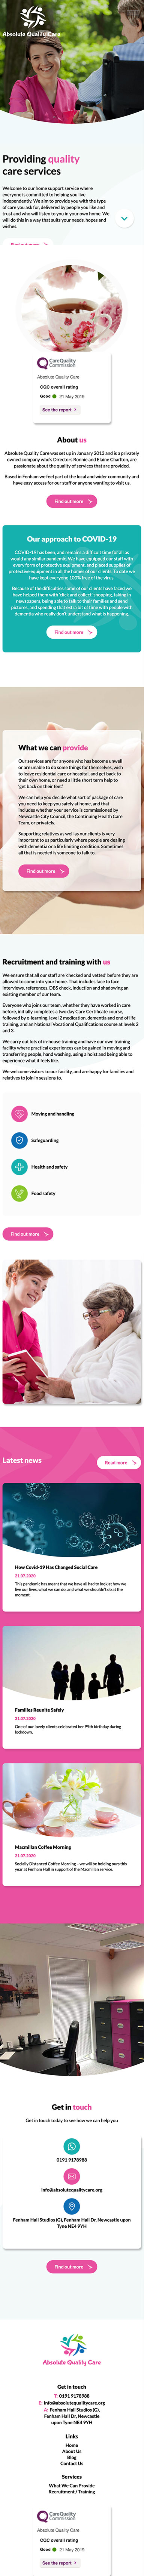 Absolute Quality Care - Mobile View